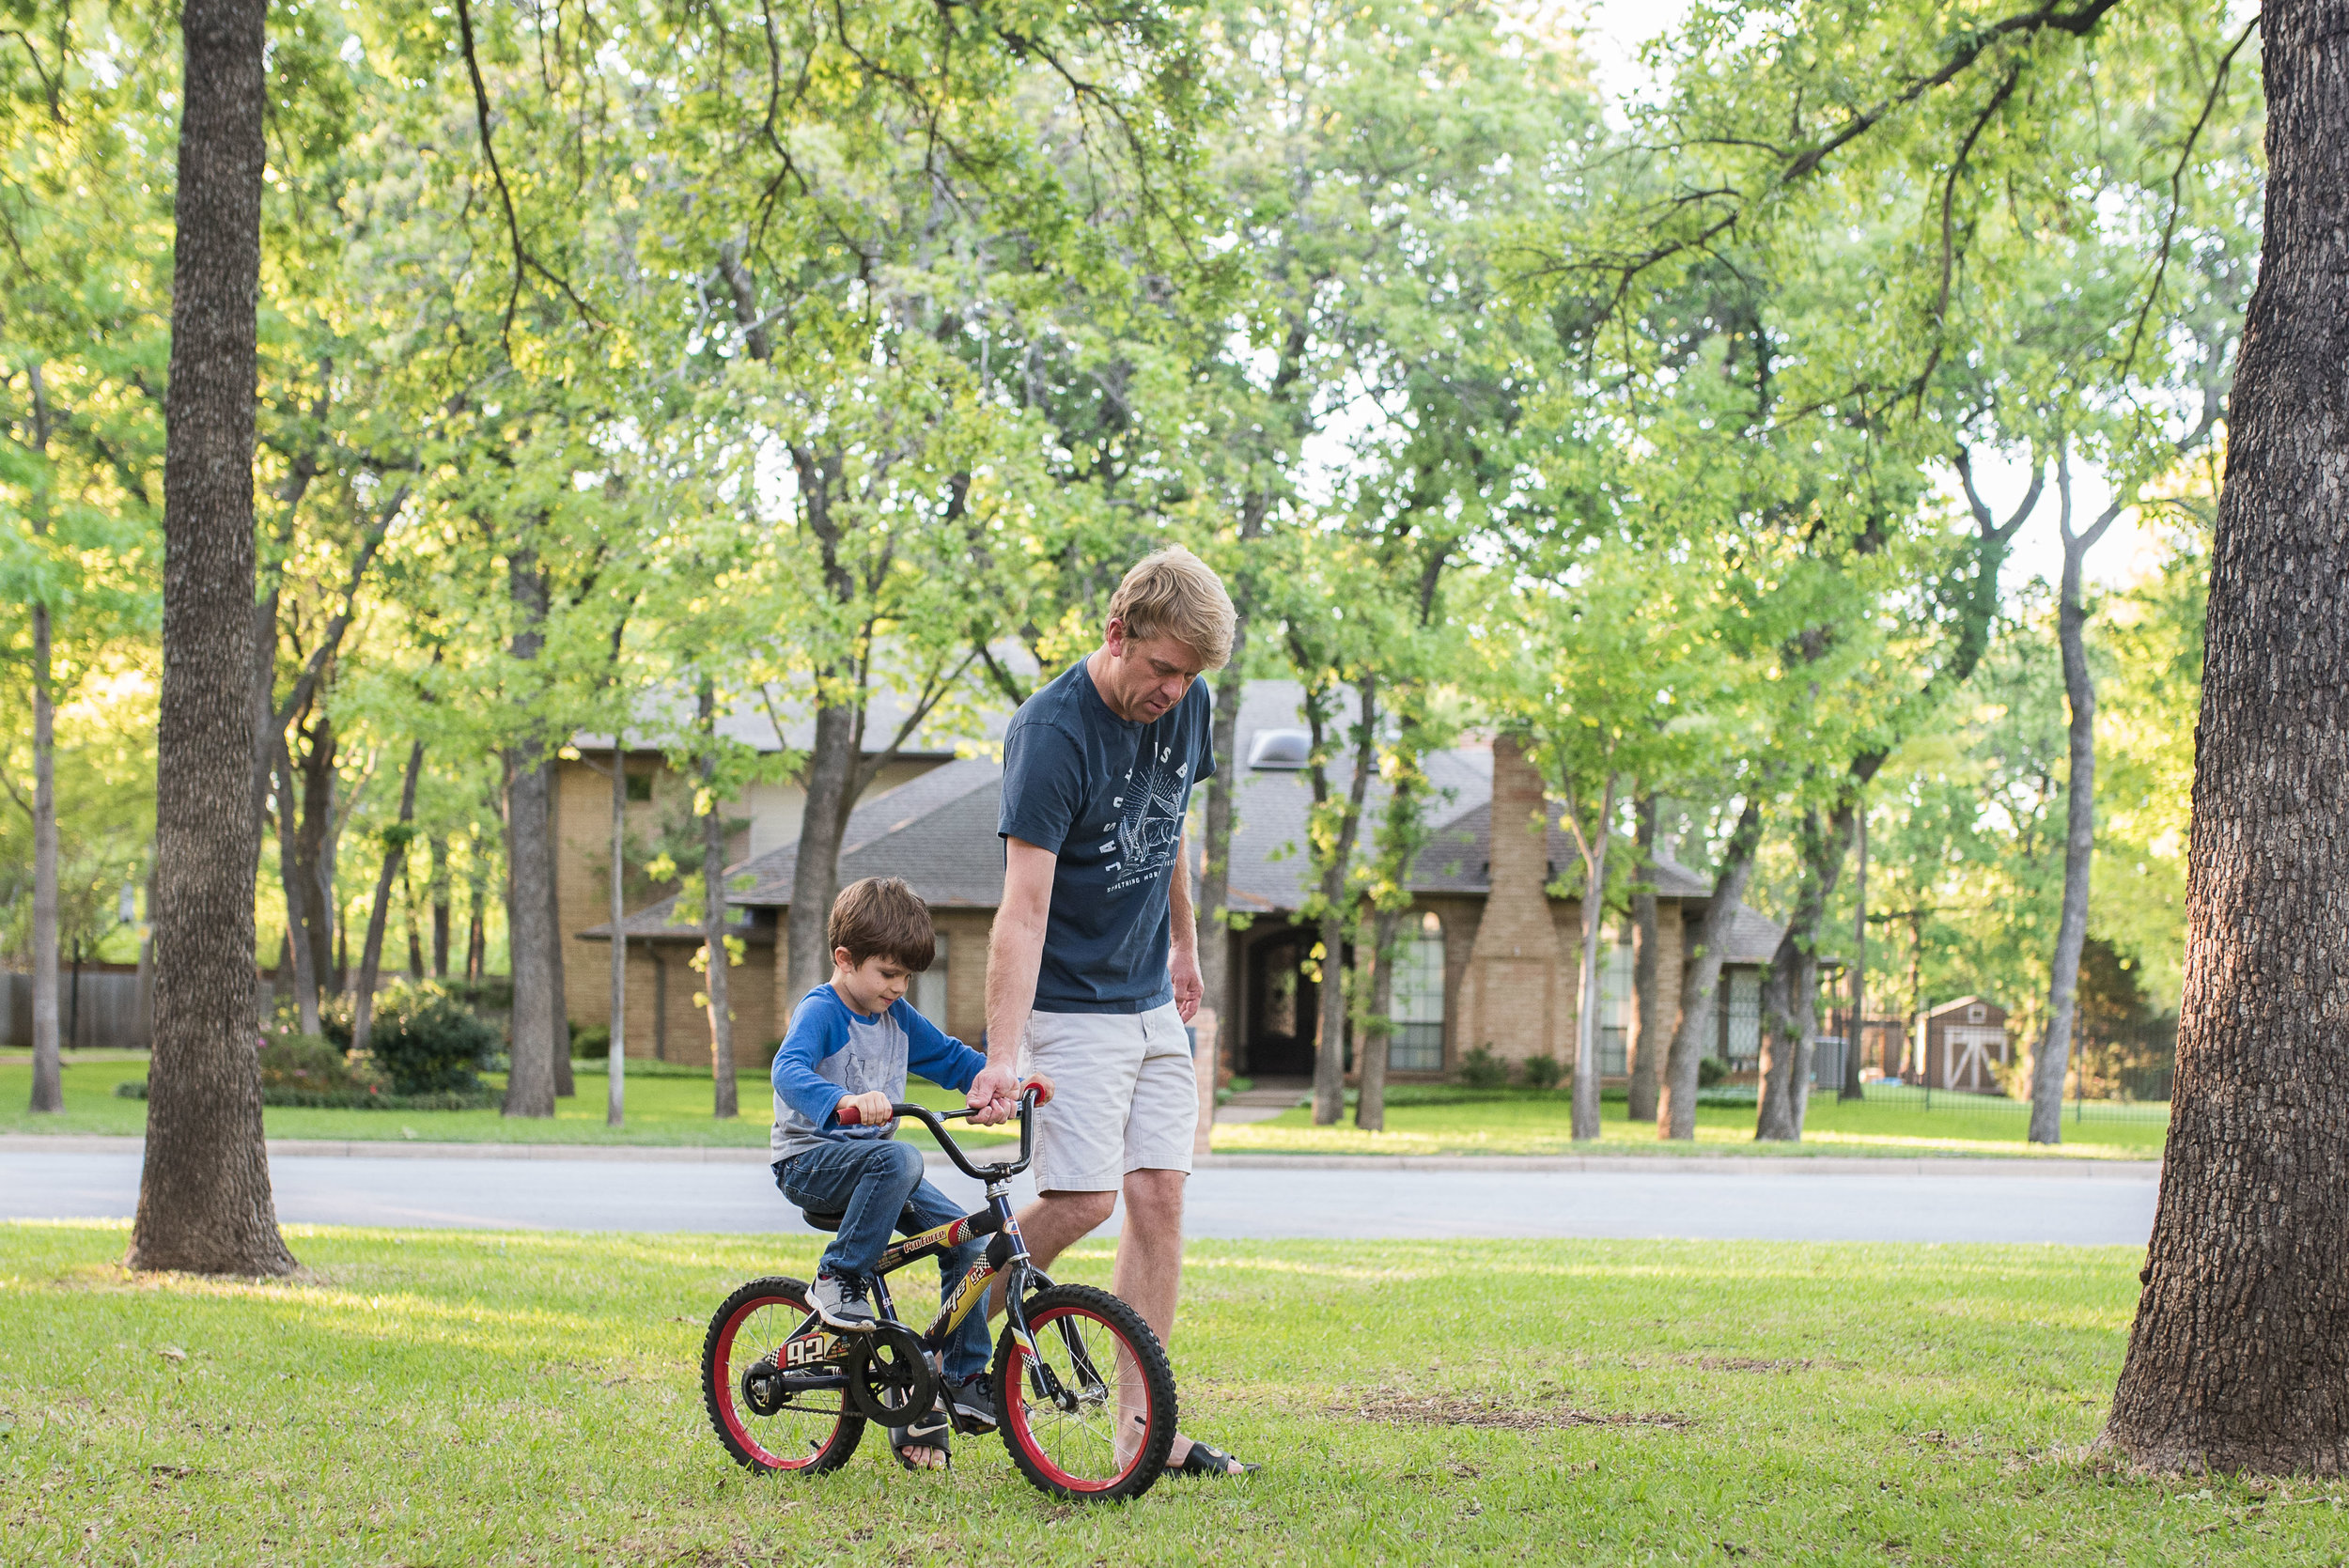 It was a quick lesson, but it's fun to see Henry finally showing some interest in learning to ride a bike.